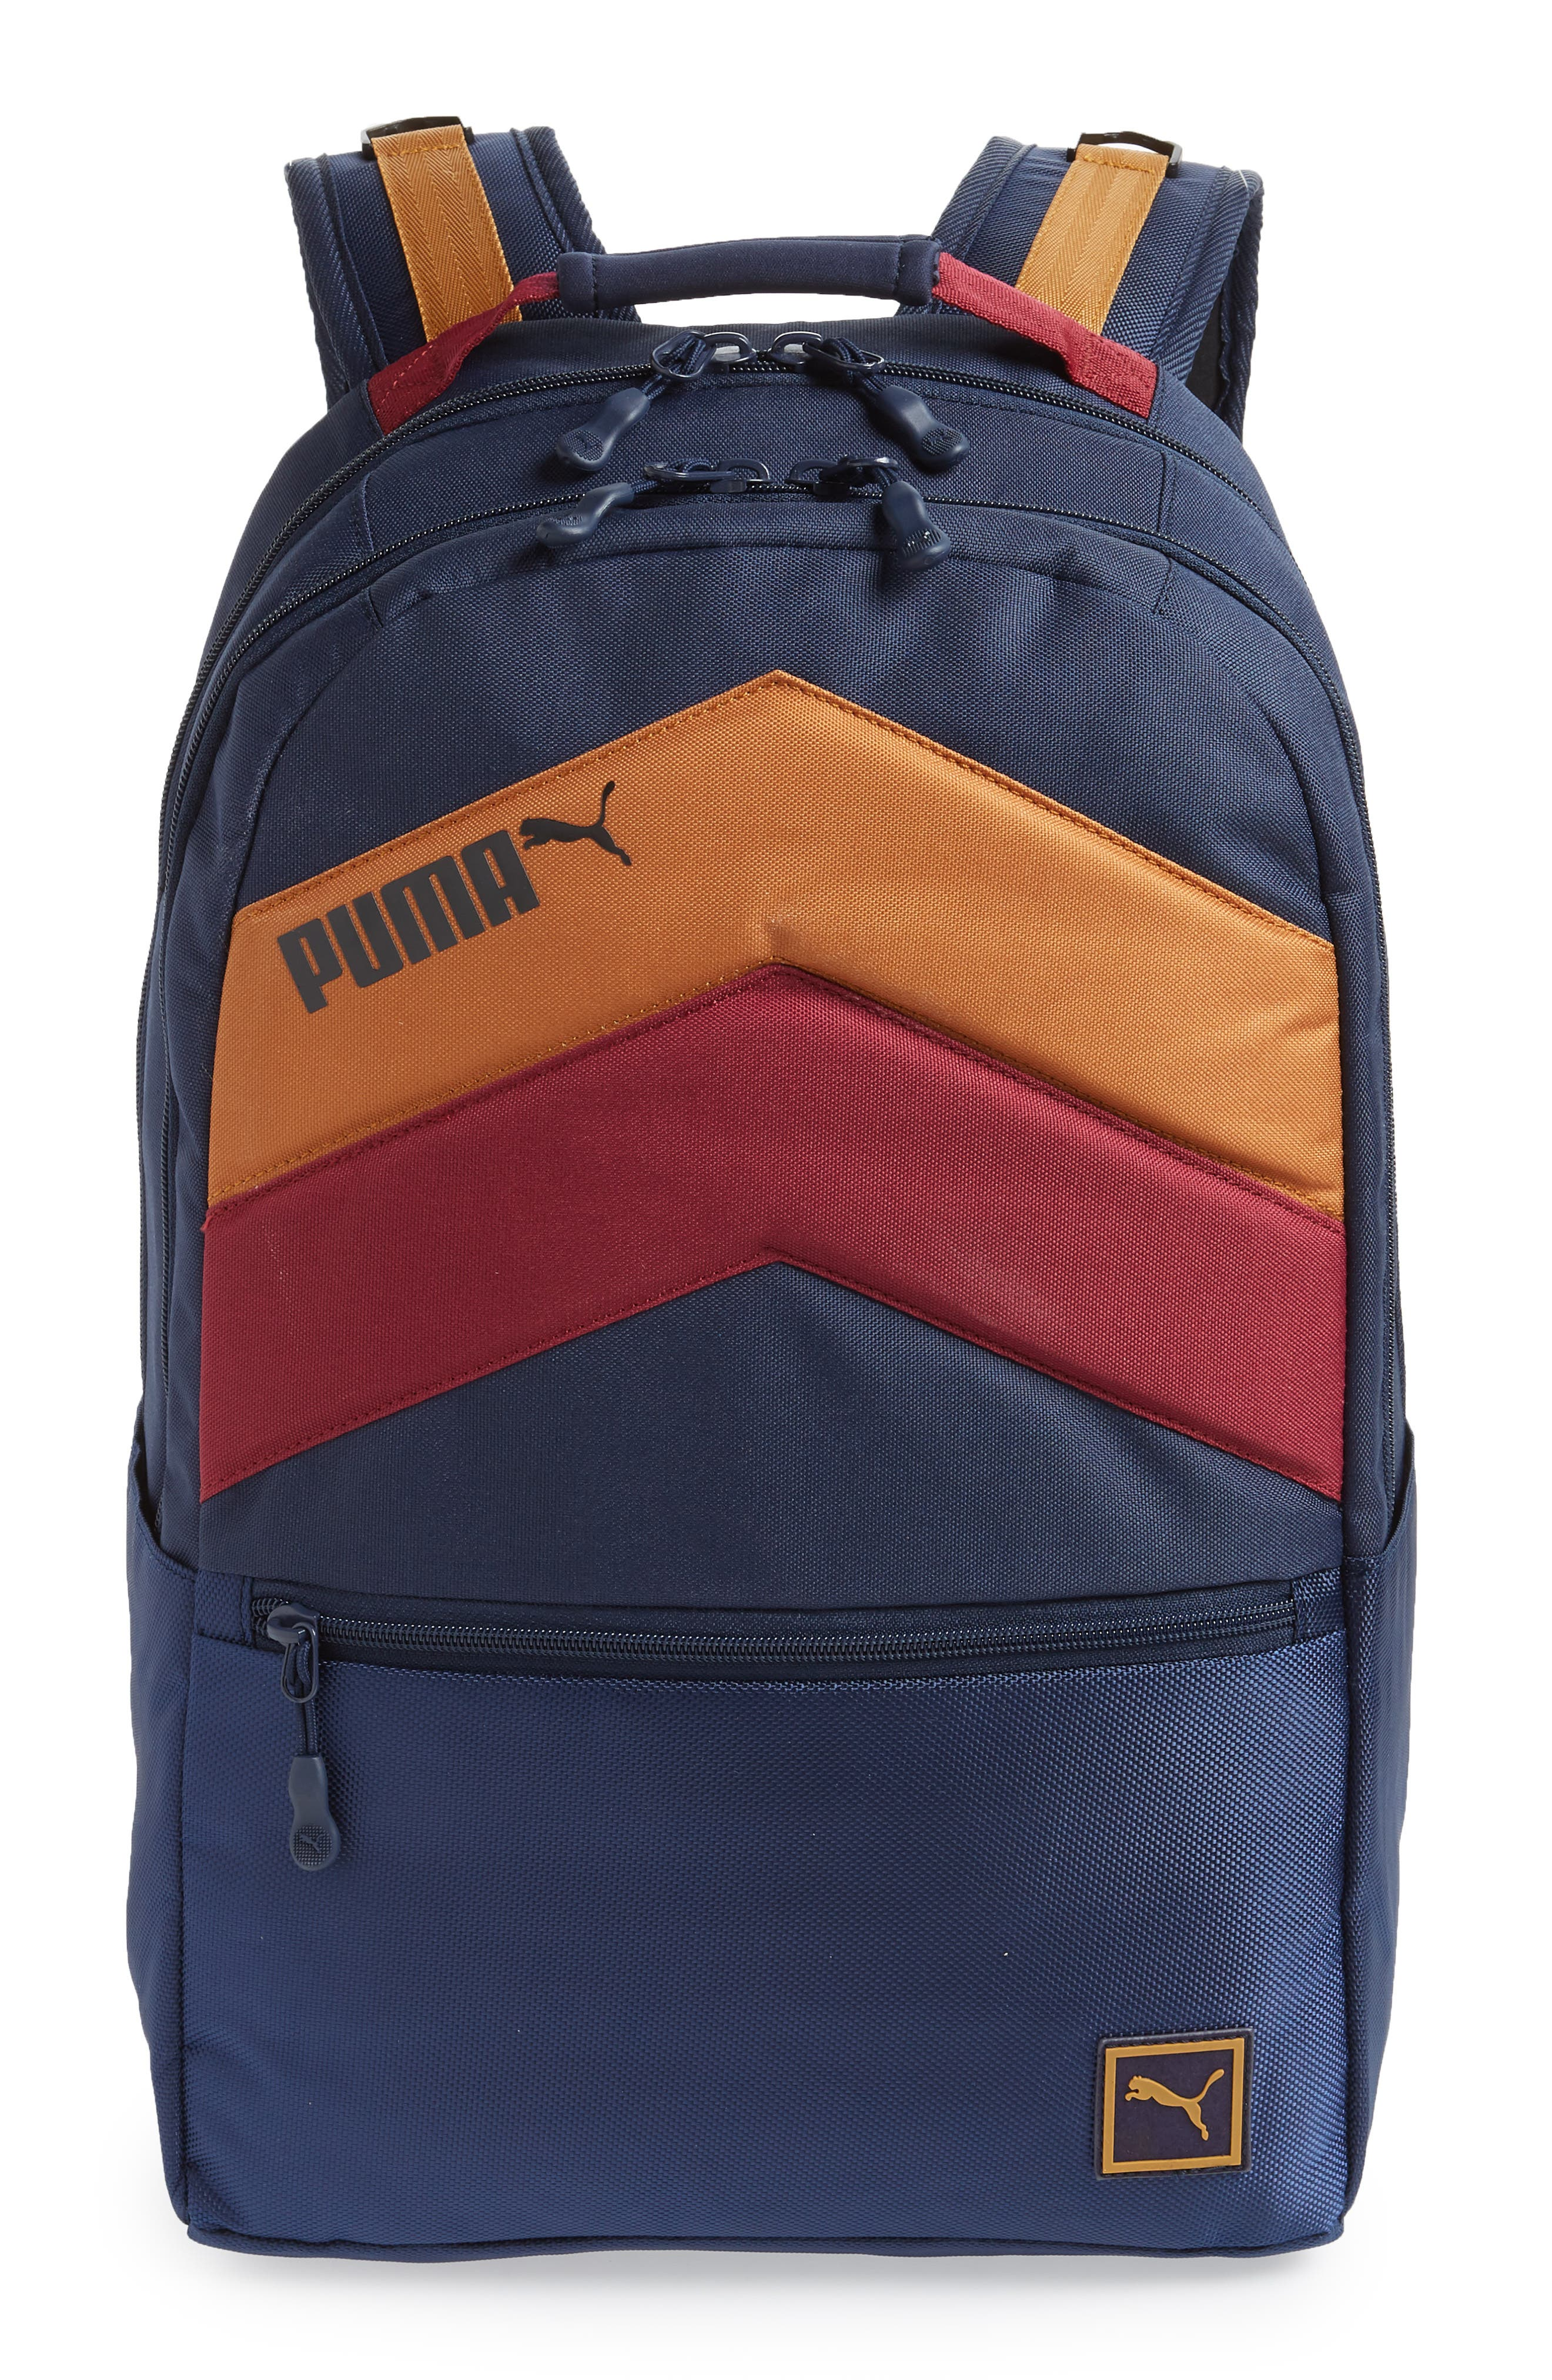 PUMA Ready Backpack, Main, color, 410